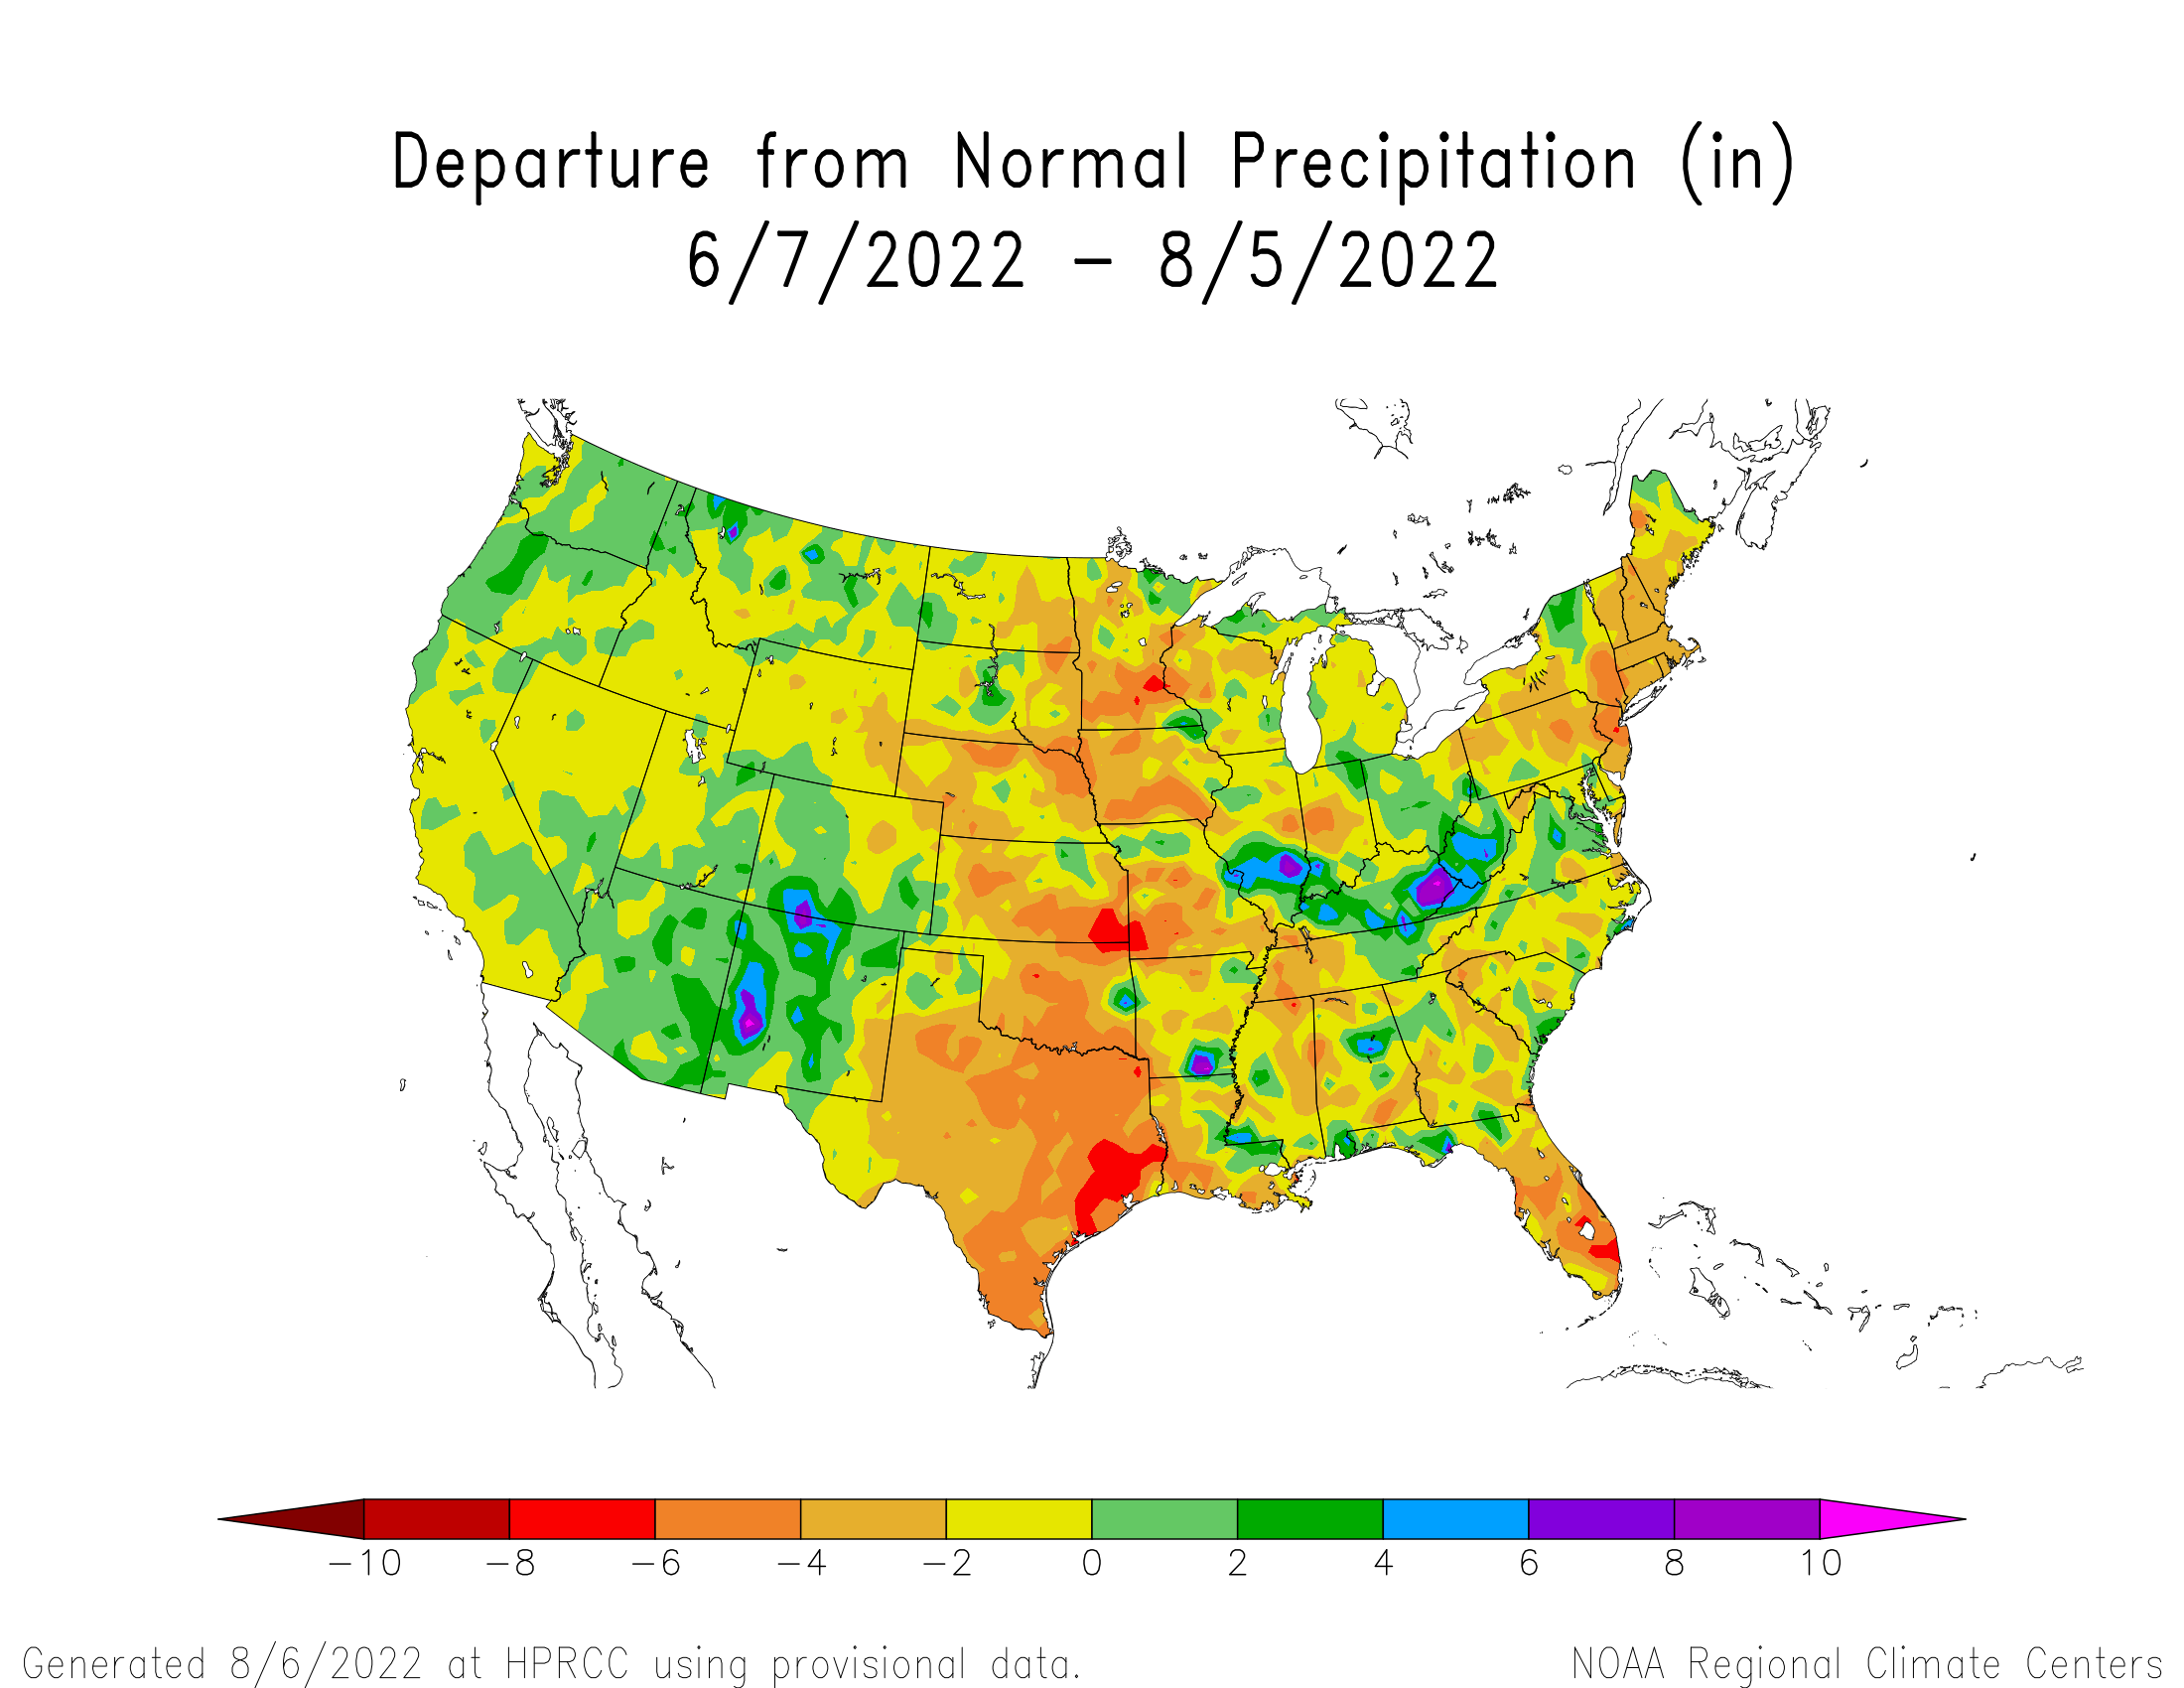 60-day Precipitation Departure from Normal